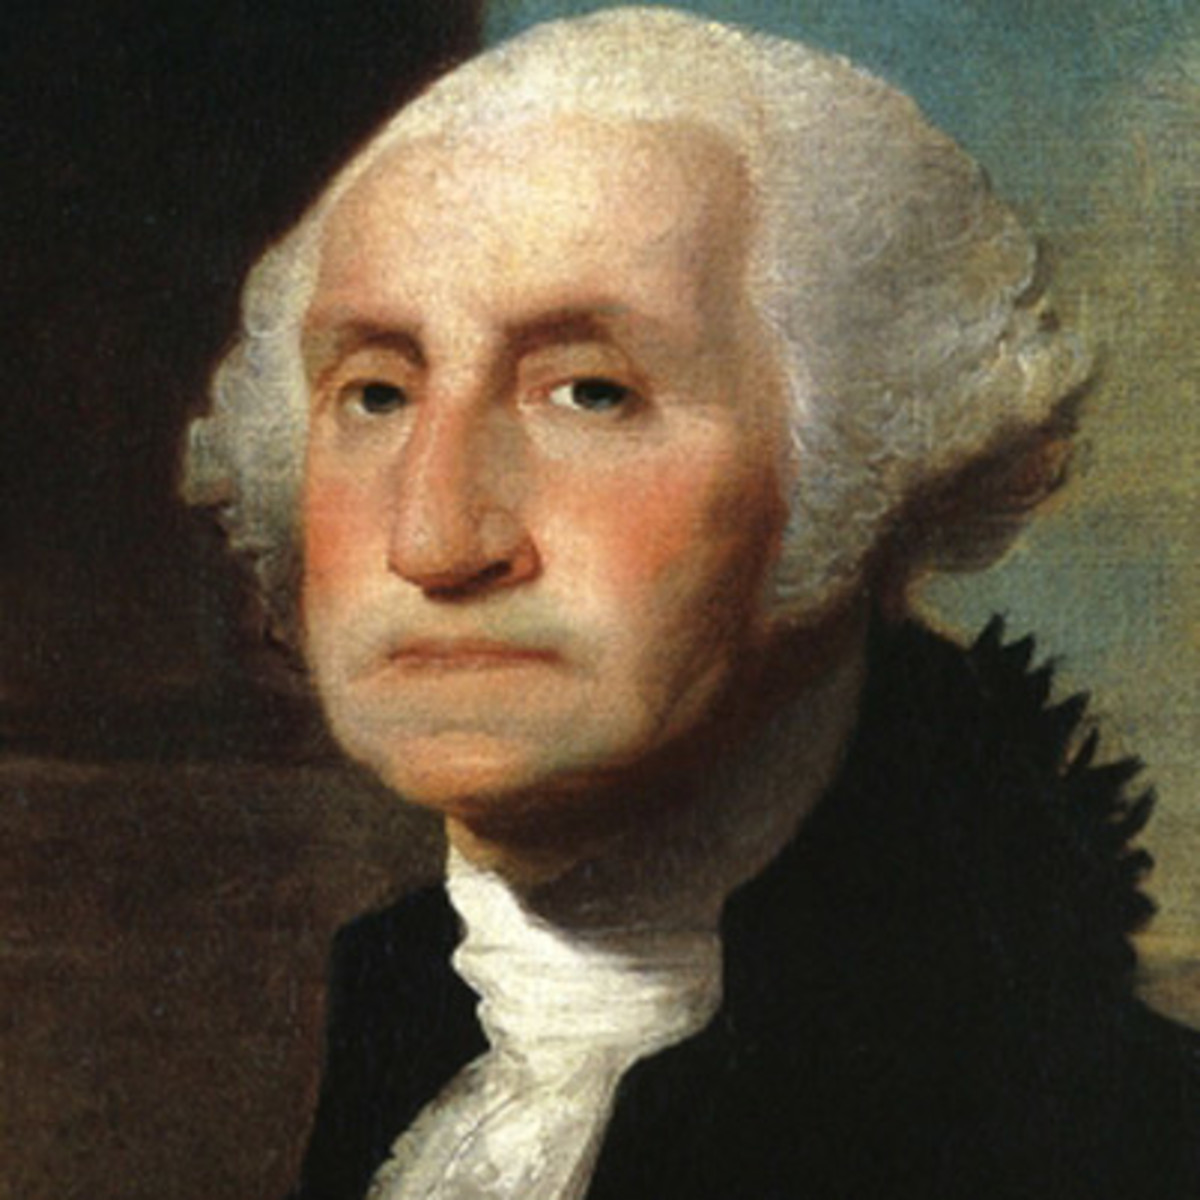 George Washington (1732-1799) - This Virginia-native served as the first President of the United States from 1789-1797. George Washington was one of the leading Patriots and played a major role in drafting the Constitution of the United States in 1787; he set up protocols in the new government's war between Britain and France. The Proclamation of Neutrality, Jay Treaty and other reforms under his leadership supported his beliefs in avoiding war with Britain at all costs. He returned to farming after his tenure as a president.Upon his death, he was famously eulogized as